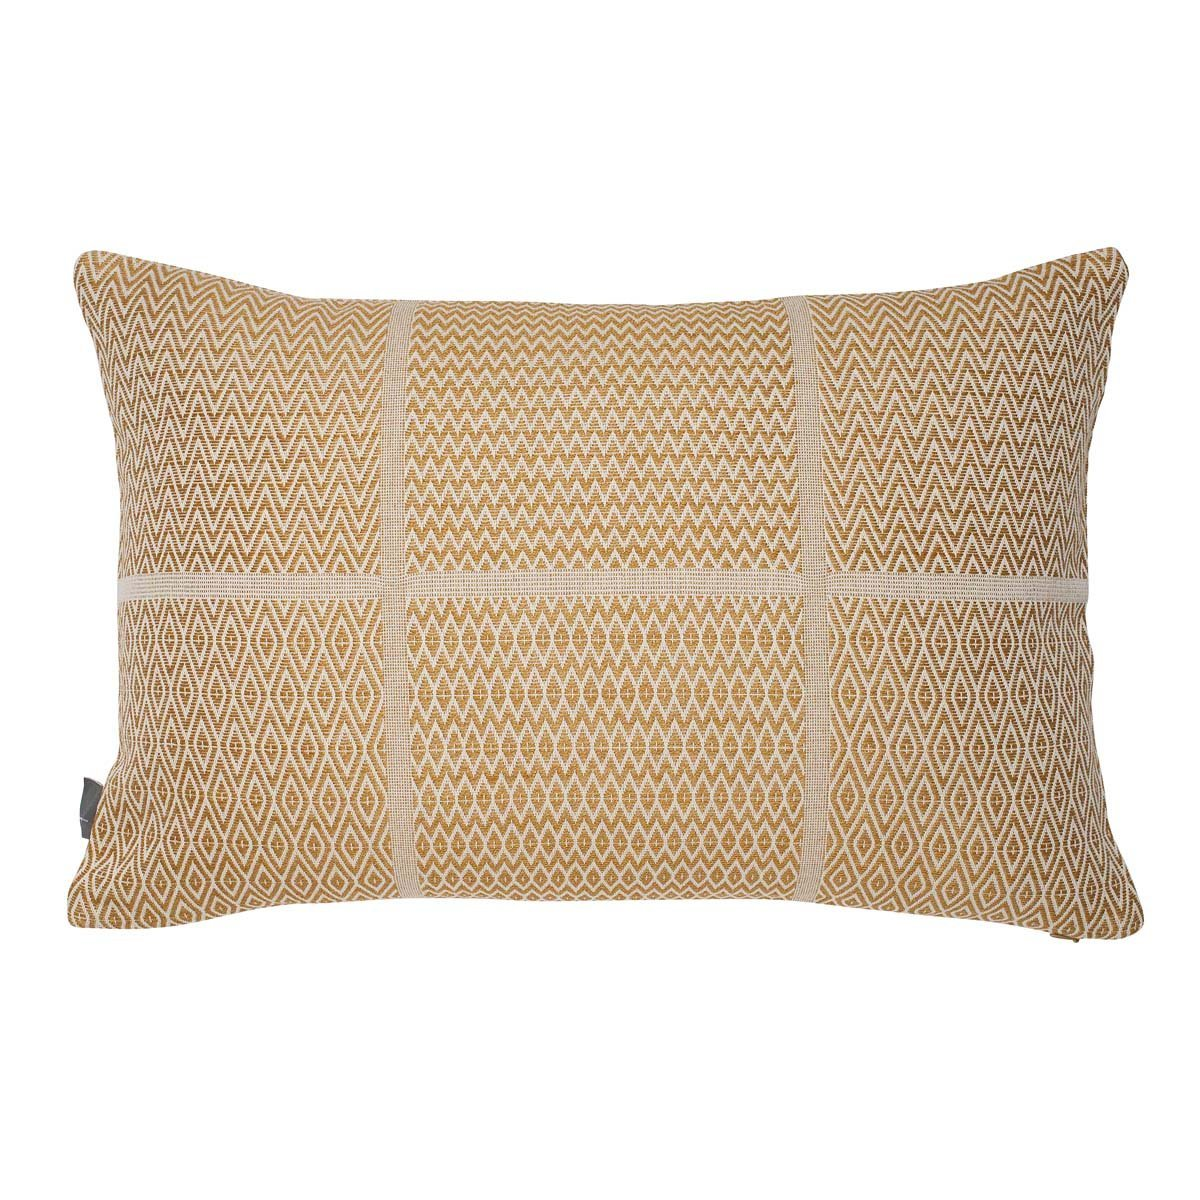 Honning Rectangle Cushion mustard